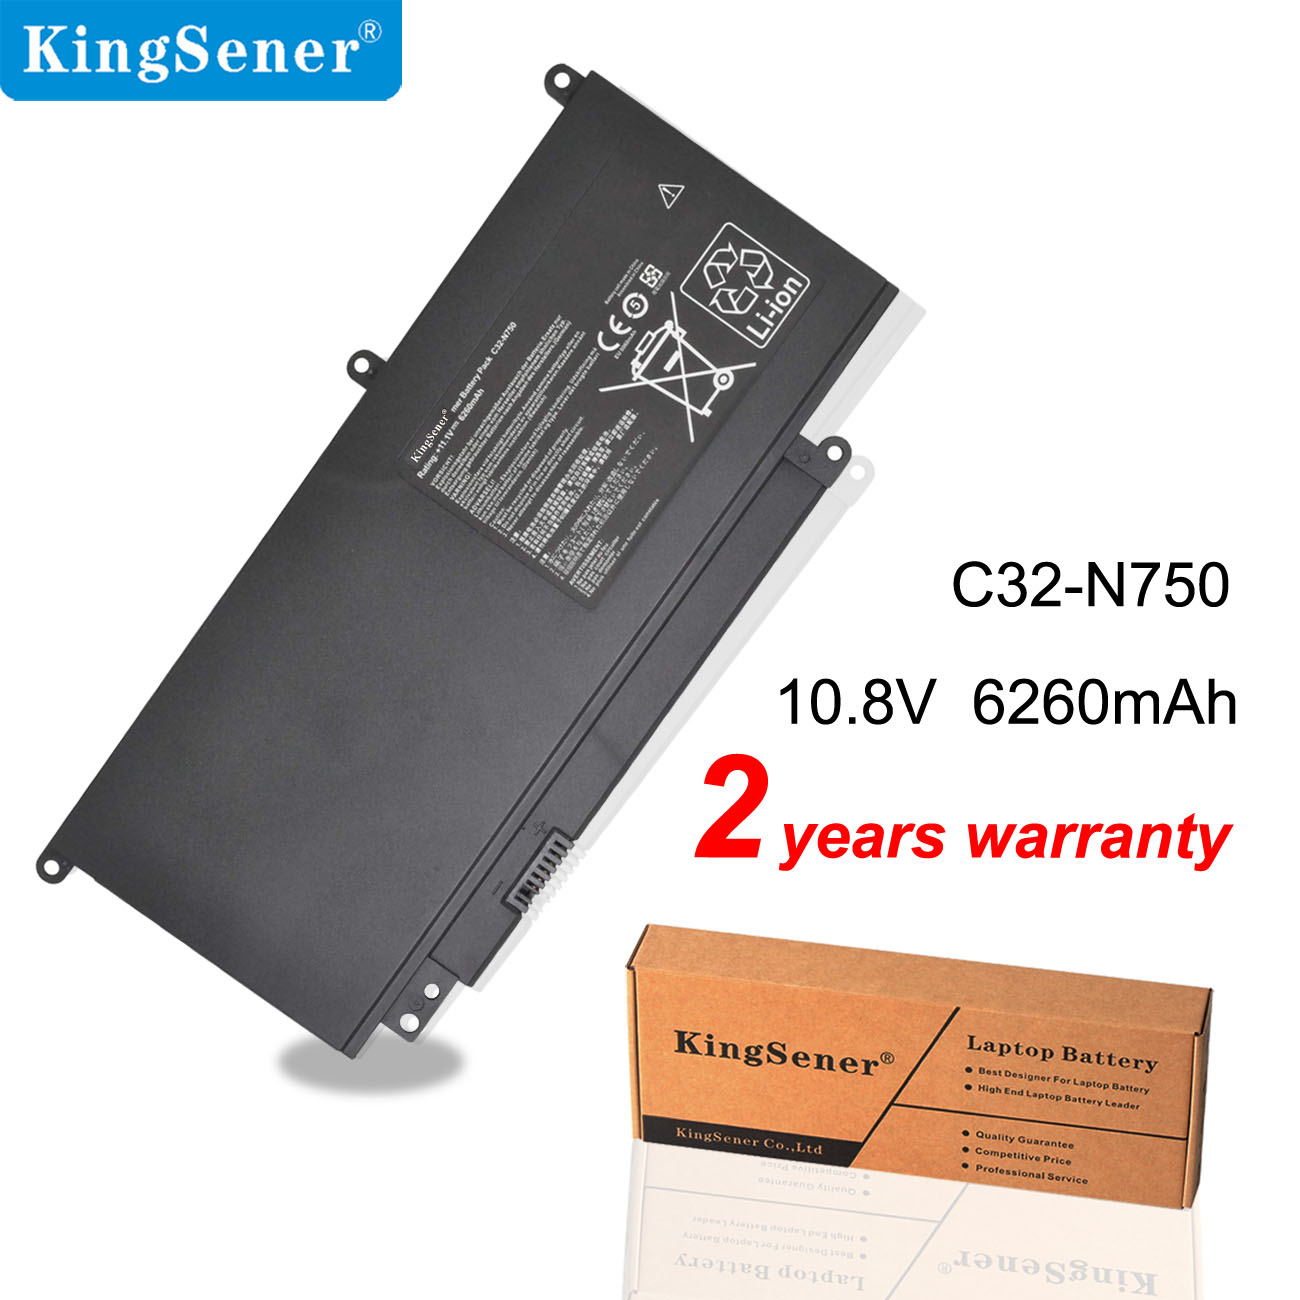 KingSener C32-N750 Laptop Battery For Asus N750 N750J N750JK N750JV N750Y47JK-SL N750Y47JV-SL  11.1V 6260mAh/69WH